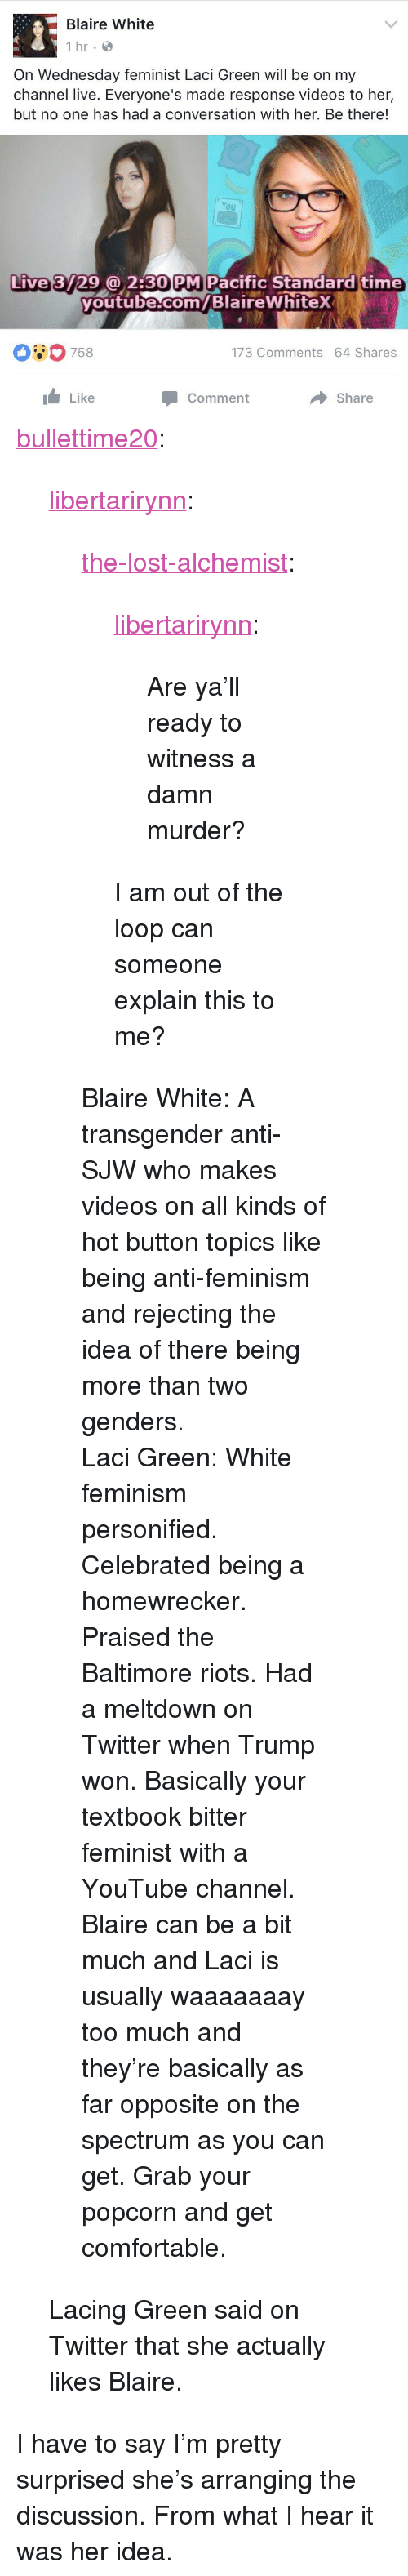 "personified: Blaire White  1 hr  On Wednesday feminist Laci Green will be on my  channel live. Everyone's made response videos to her,  but no one has had a conversation with her. Be there!  You  Live 3729@ 2:30 PM Pacific Standard time  youtube.com/BlaireWhitex  outube com  00758  173 Comments 64 Shares  Like  Share  Comment <p><a href=""http://bullettime20.tumblr.com/post/158906449393/the-lost-alchemist-libertarirynn-are-yall"" class=""tumblr_blog"">bullettime20</a>:</p>  <blockquote><p><a href=""https://libertarirynn.tumblr.com/post/158905591739/the-lost-alchemist-libertarirynn-are-yall"" class=""tumblr_blog"">libertarirynn</a>:</p>  <blockquote><p><a href=""https://the-lost-alchemist.tumblr.com/post/158905360116/are-yall-ready-to-witness-a-damn-murder"" class=""tumblr_blog"">the-lost-alchemist</a>:</p><blockquote> <p><a href=""https://libertarirynn.tumblr.com/post/158903934169/are-yall-ready-to-witness-a-damn-murder"" class=""tumblr_blog"">libertarirynn</a>:</p>  <blockquote><p>Are ya'll ready to witness a damn murder?</p></blockquote>  <p>I am out of the loop can someone explain this to me?</p> </blockquote> <p>Blaire White: A transgender anti-SJW who makes videos on all kinds of hot button topics like being anti-feminism and rejecting the idea of there being more than two genders.</p><p>Laci Green: White feminism personified. Celebrated being a homewrecker. Praised the Baltimore riots. Had a meltdown on Twitter when Trump won. Basically your textbook bitter feminist with a YouTube channel. </p><p>Blaire can be a bit much and Laci is usually waaaaaaay too much and they're basically as far opposite on the spectrum as you can get. Grab your popcorn and get comfortable. </p></blockquote>  <p>Lacing Green said on Twitter that she actually likes Blaire.</p></blockquote>  <p>I have to say I&rsquo;m pretty surprised she&rsquo;s arranging the discussion. From what I hear it was her idea.</p>"